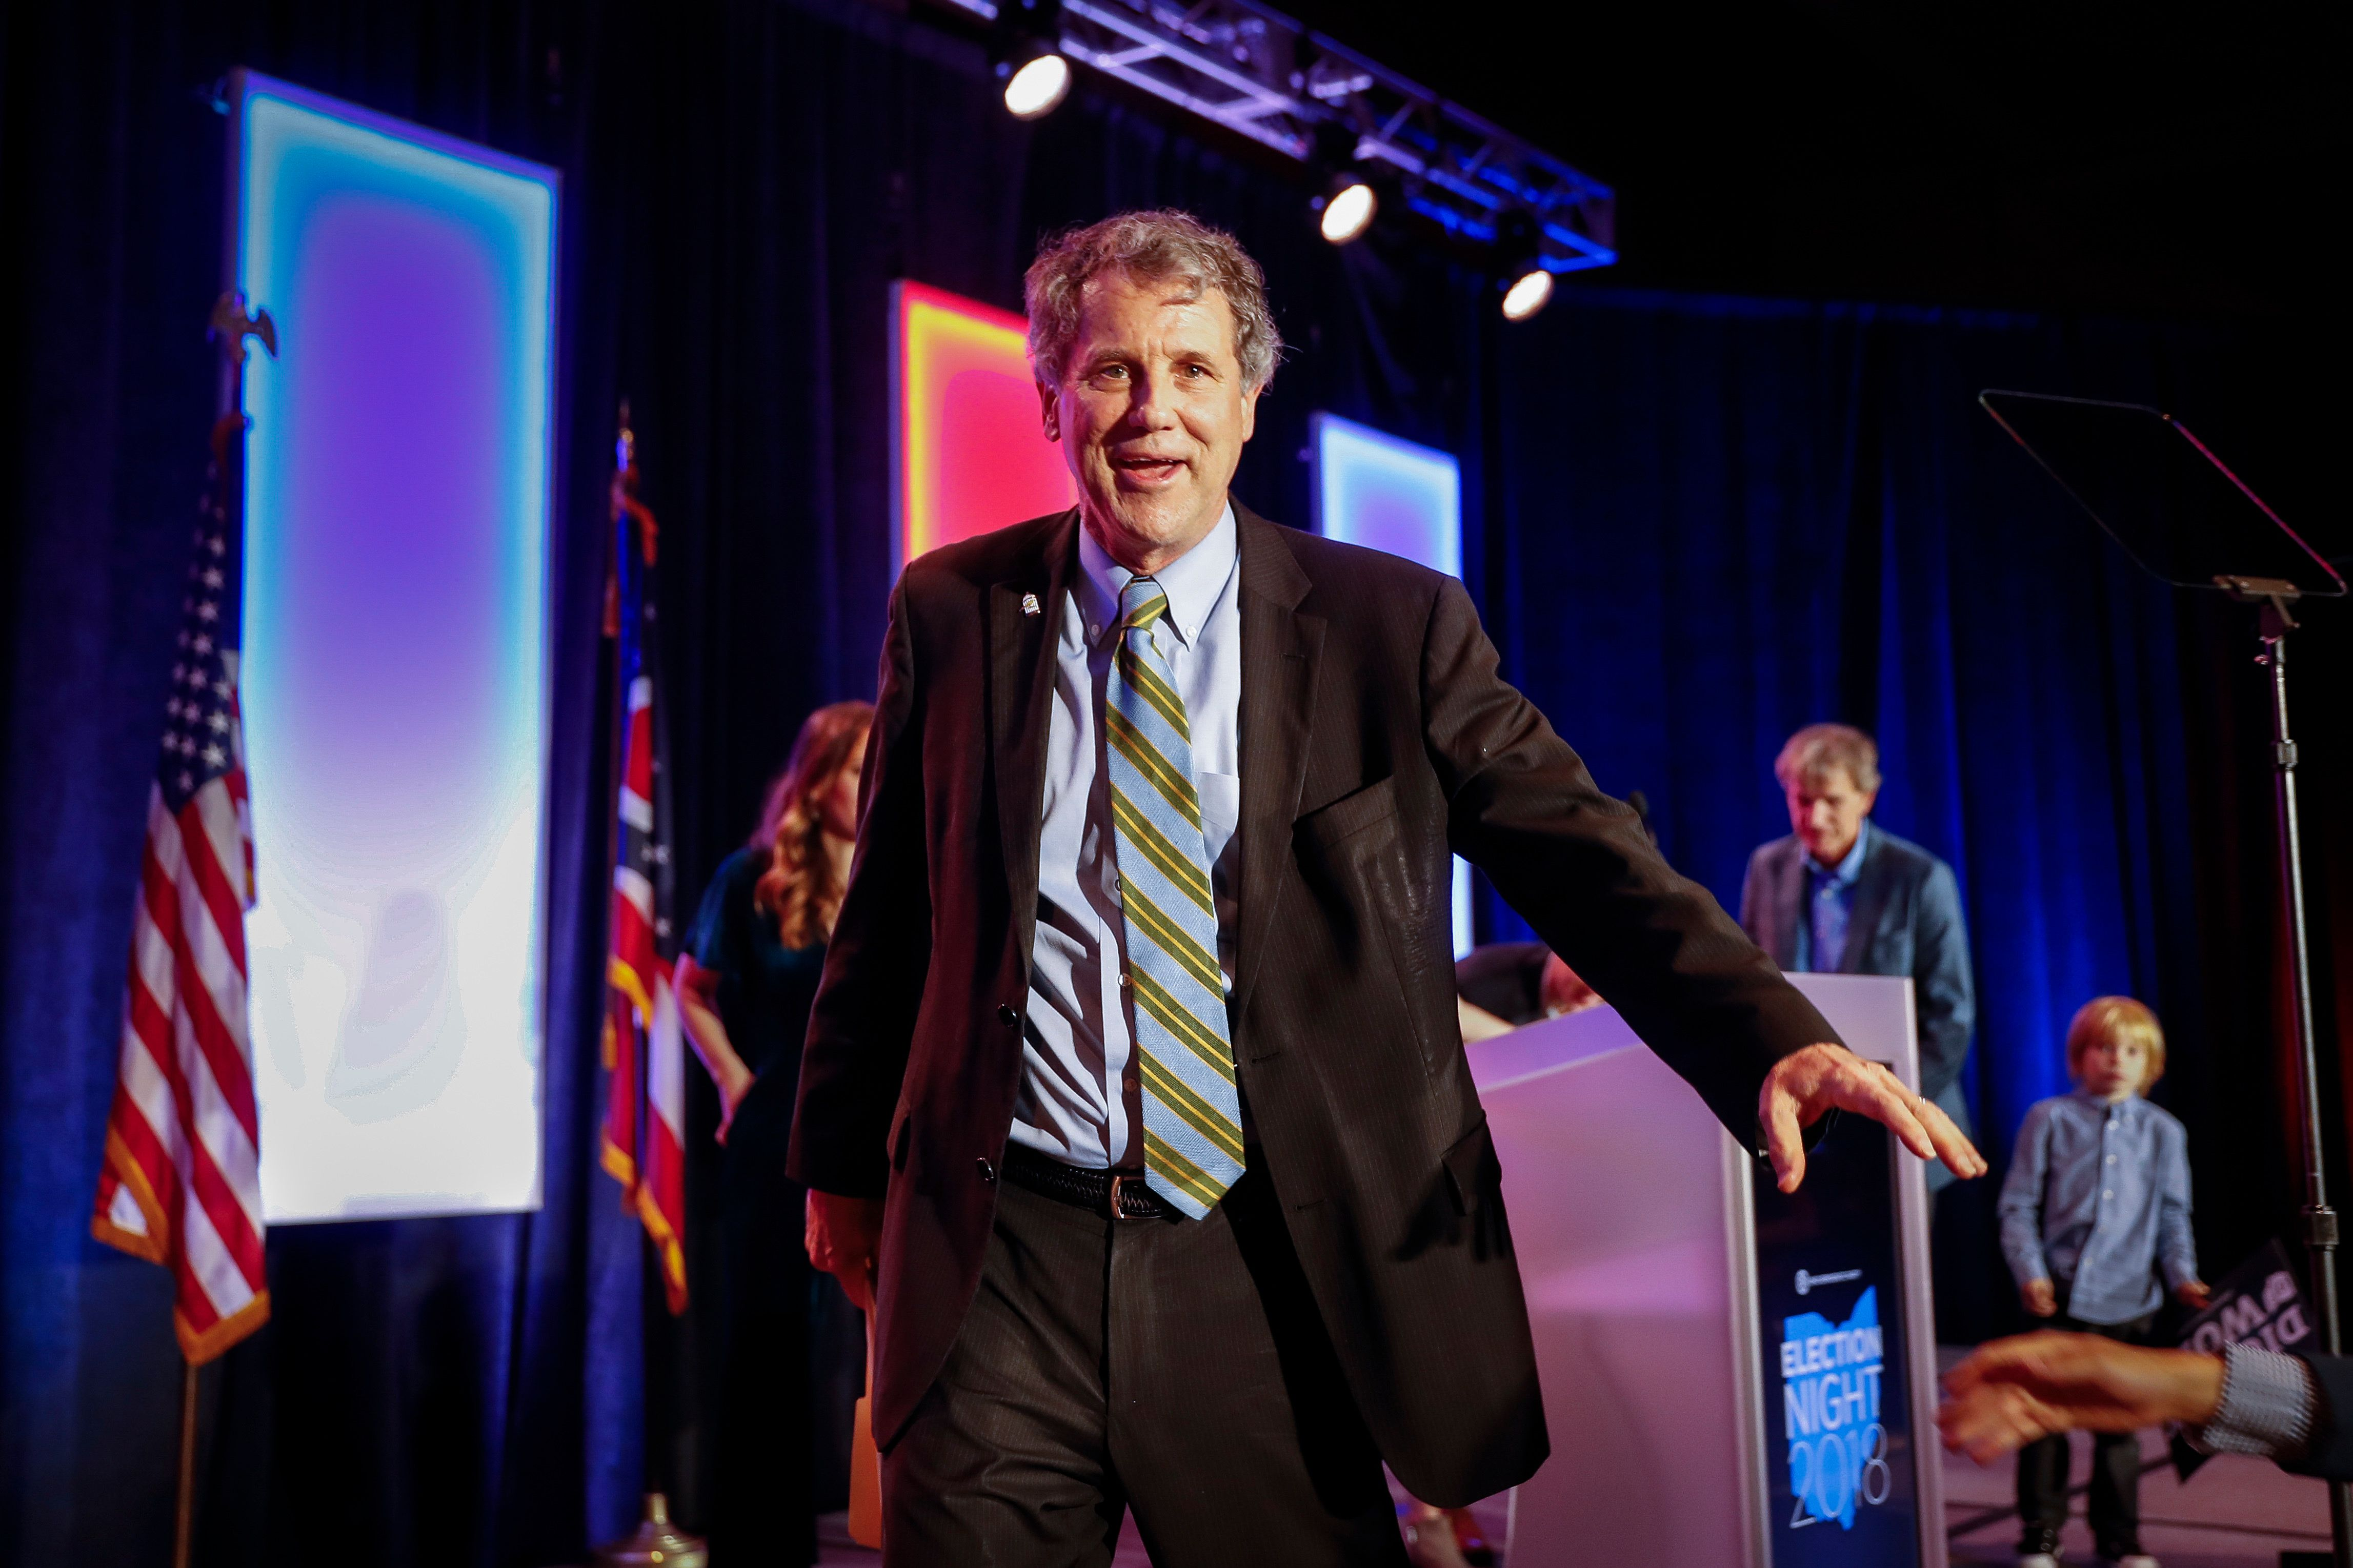 Sen. Sherrod Brown, D-Ohio, leaves the stage following a speech after winning his reelection bid during the Ohio Democratic Party election night watch party, Tuesday, Nov. 6, 2018, in Columbus, Ohio. (AP Photo/John Minchillo)